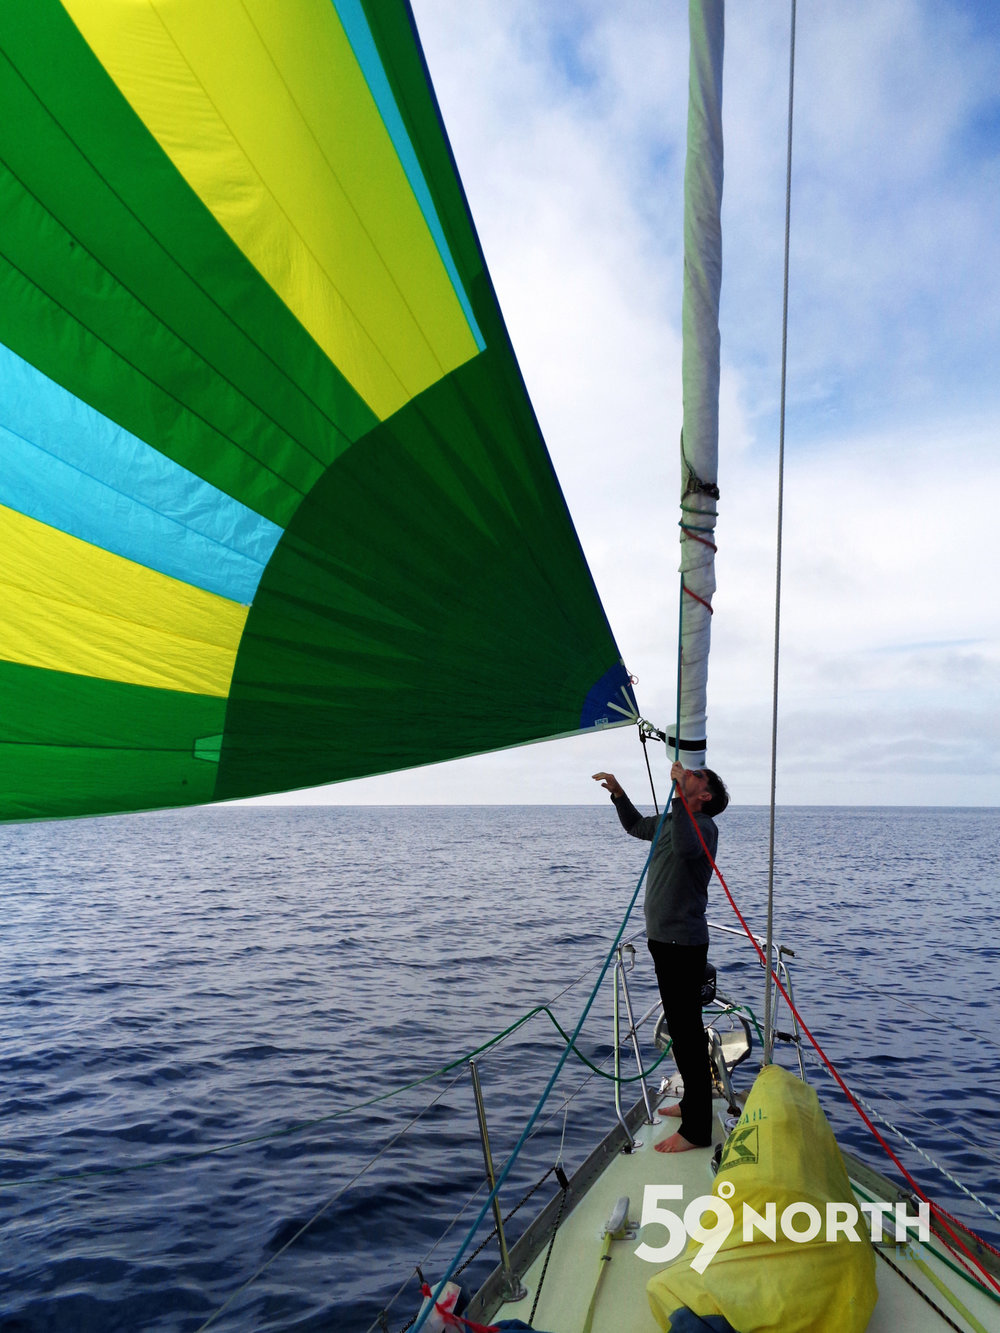 Amazing spinnaker run on the way back to Lunenburg! Aug. 2016